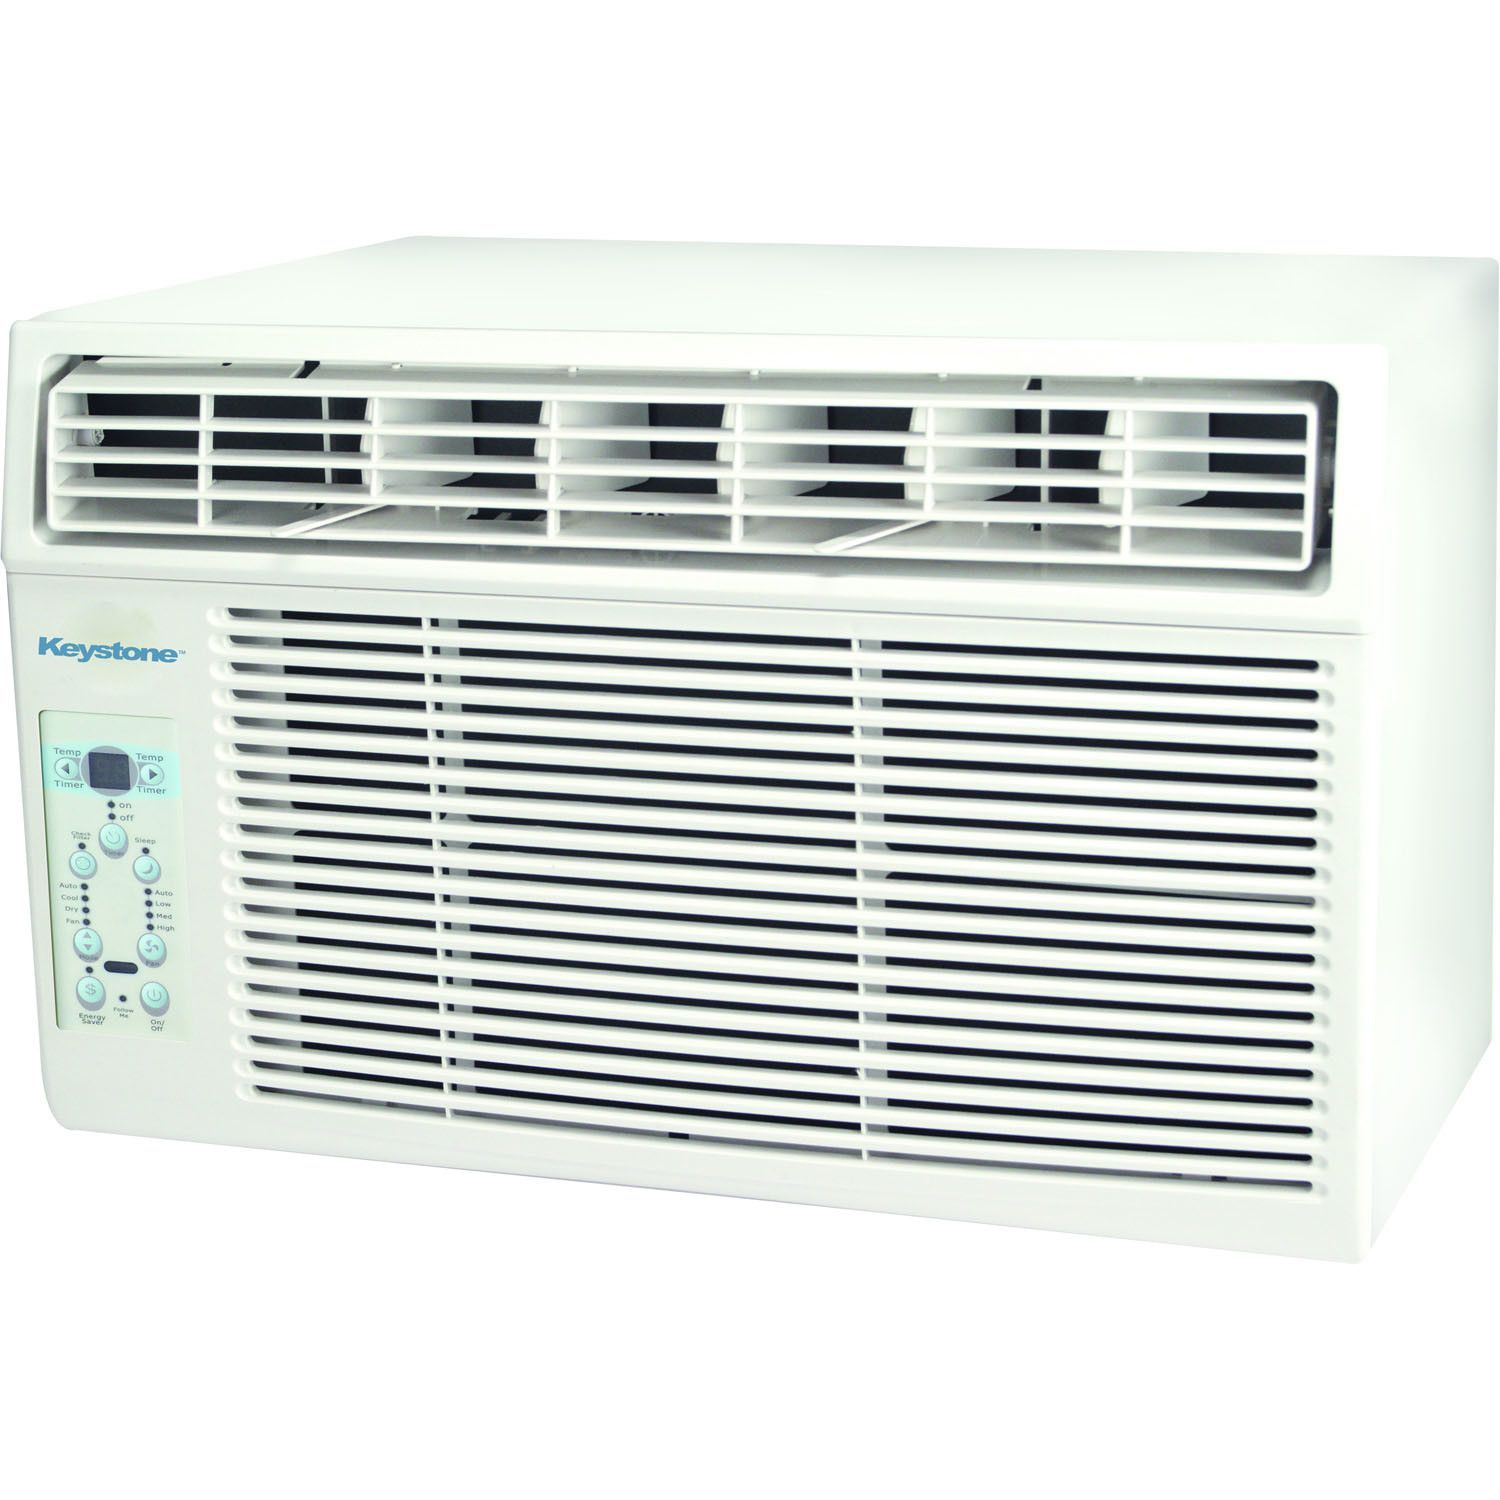 Keystone 12 000 Btu Window Air Conditioner With Remote Window Air Conditioner Air Conditioner Btu Air Conditioner